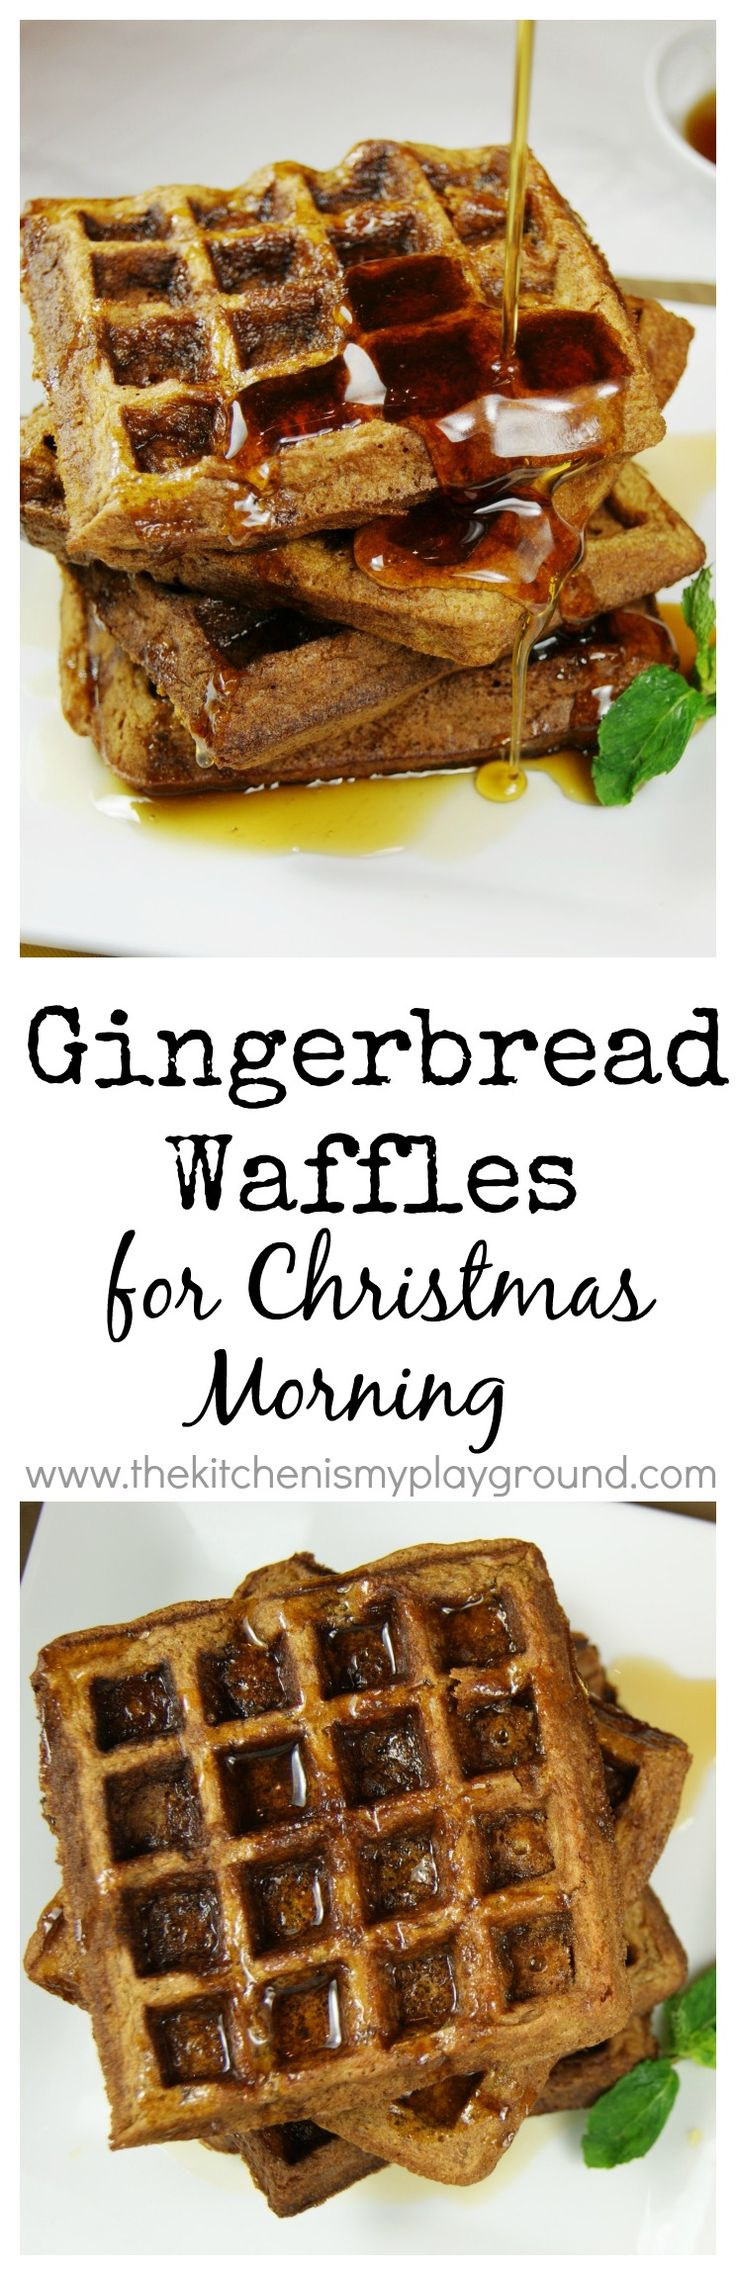 Gingerbread Waffles ~ fabulous for Christmas morning.  Can be made ahead & warmed in the oven for an easy morning. www.thekitchenismyplayground.com